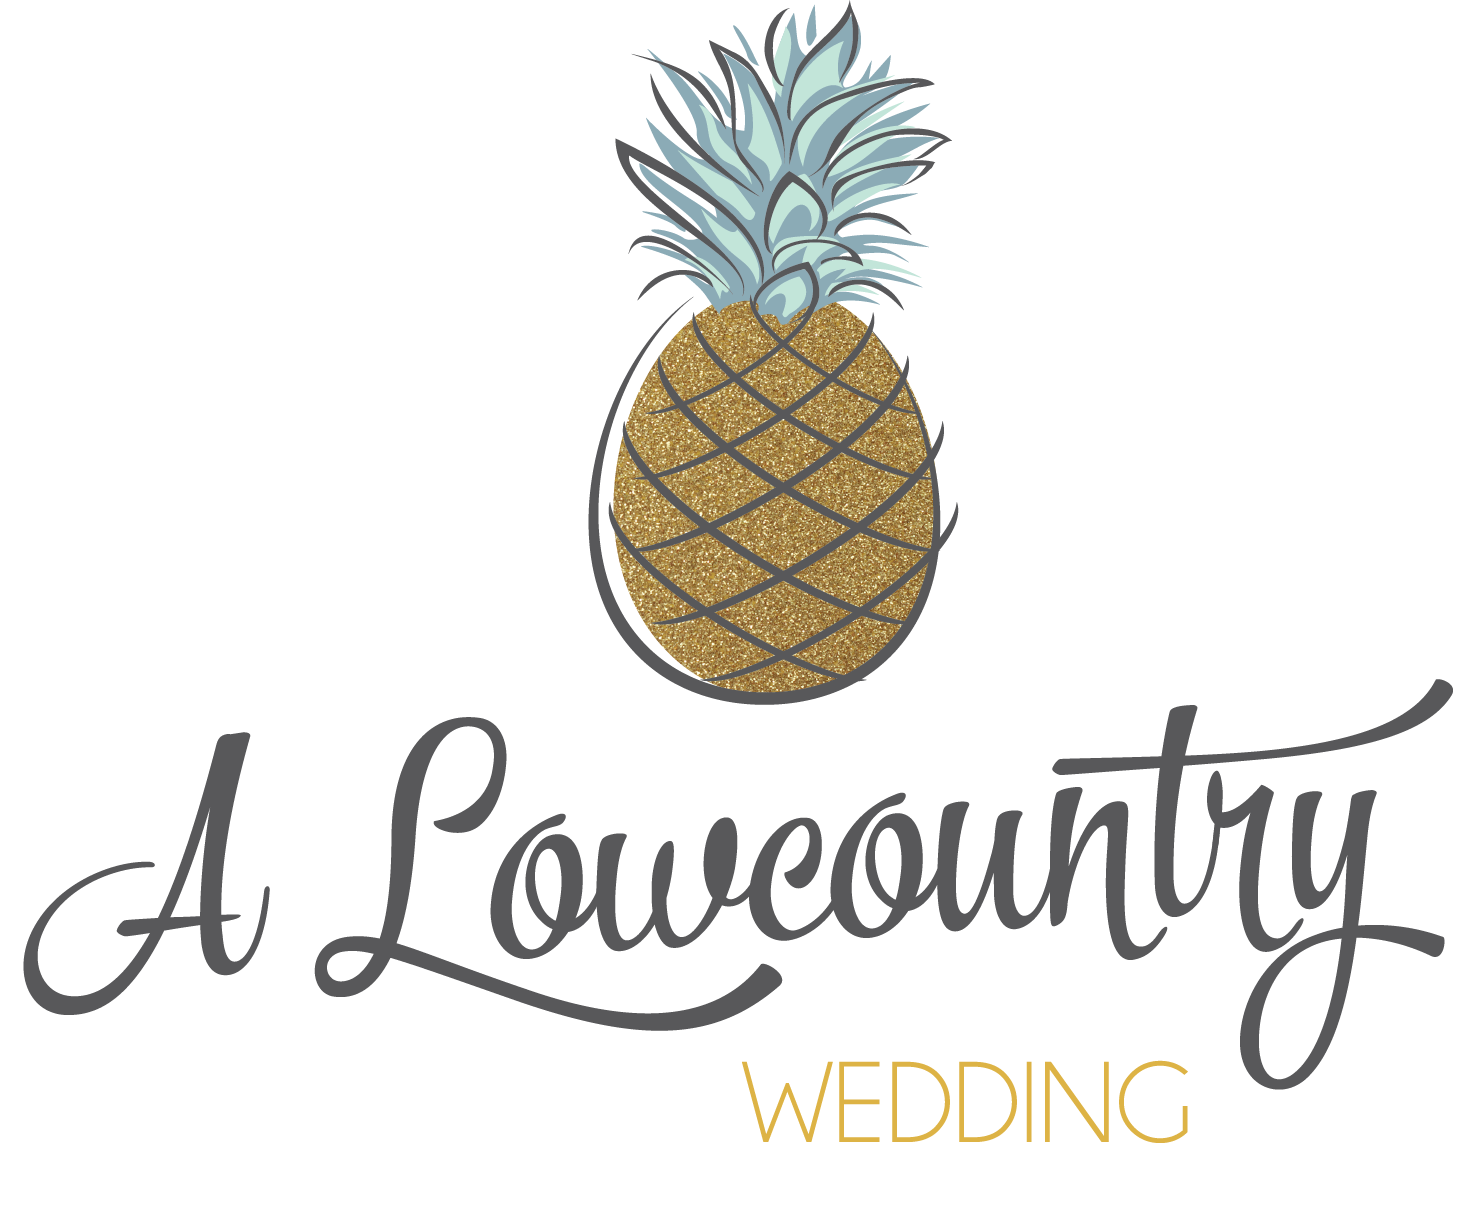 A Lowcountry Wedding Magazine logo